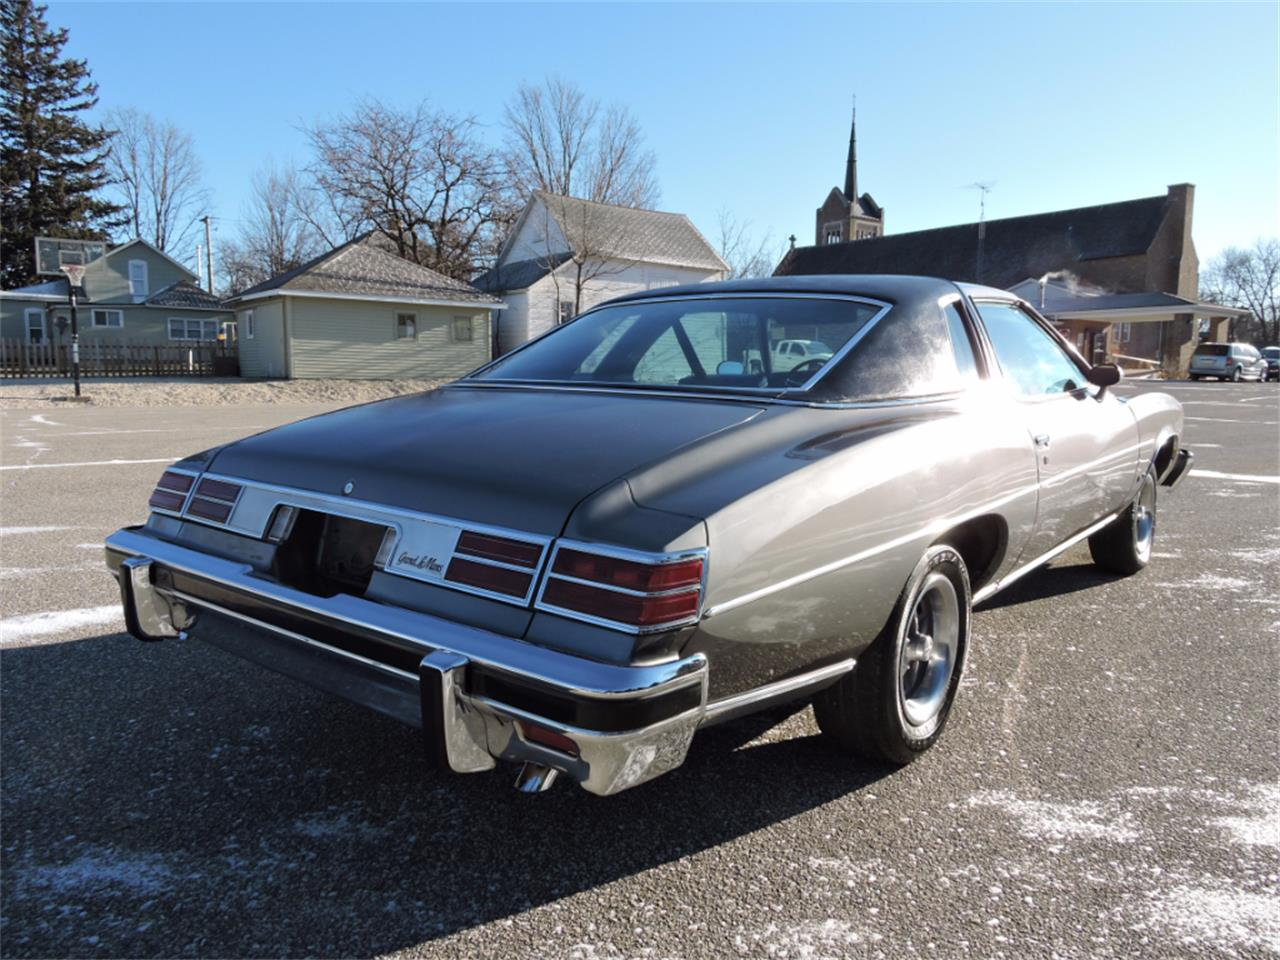 1977 Pontiac Grand LeMans for sale in Greene, IA – photo 7